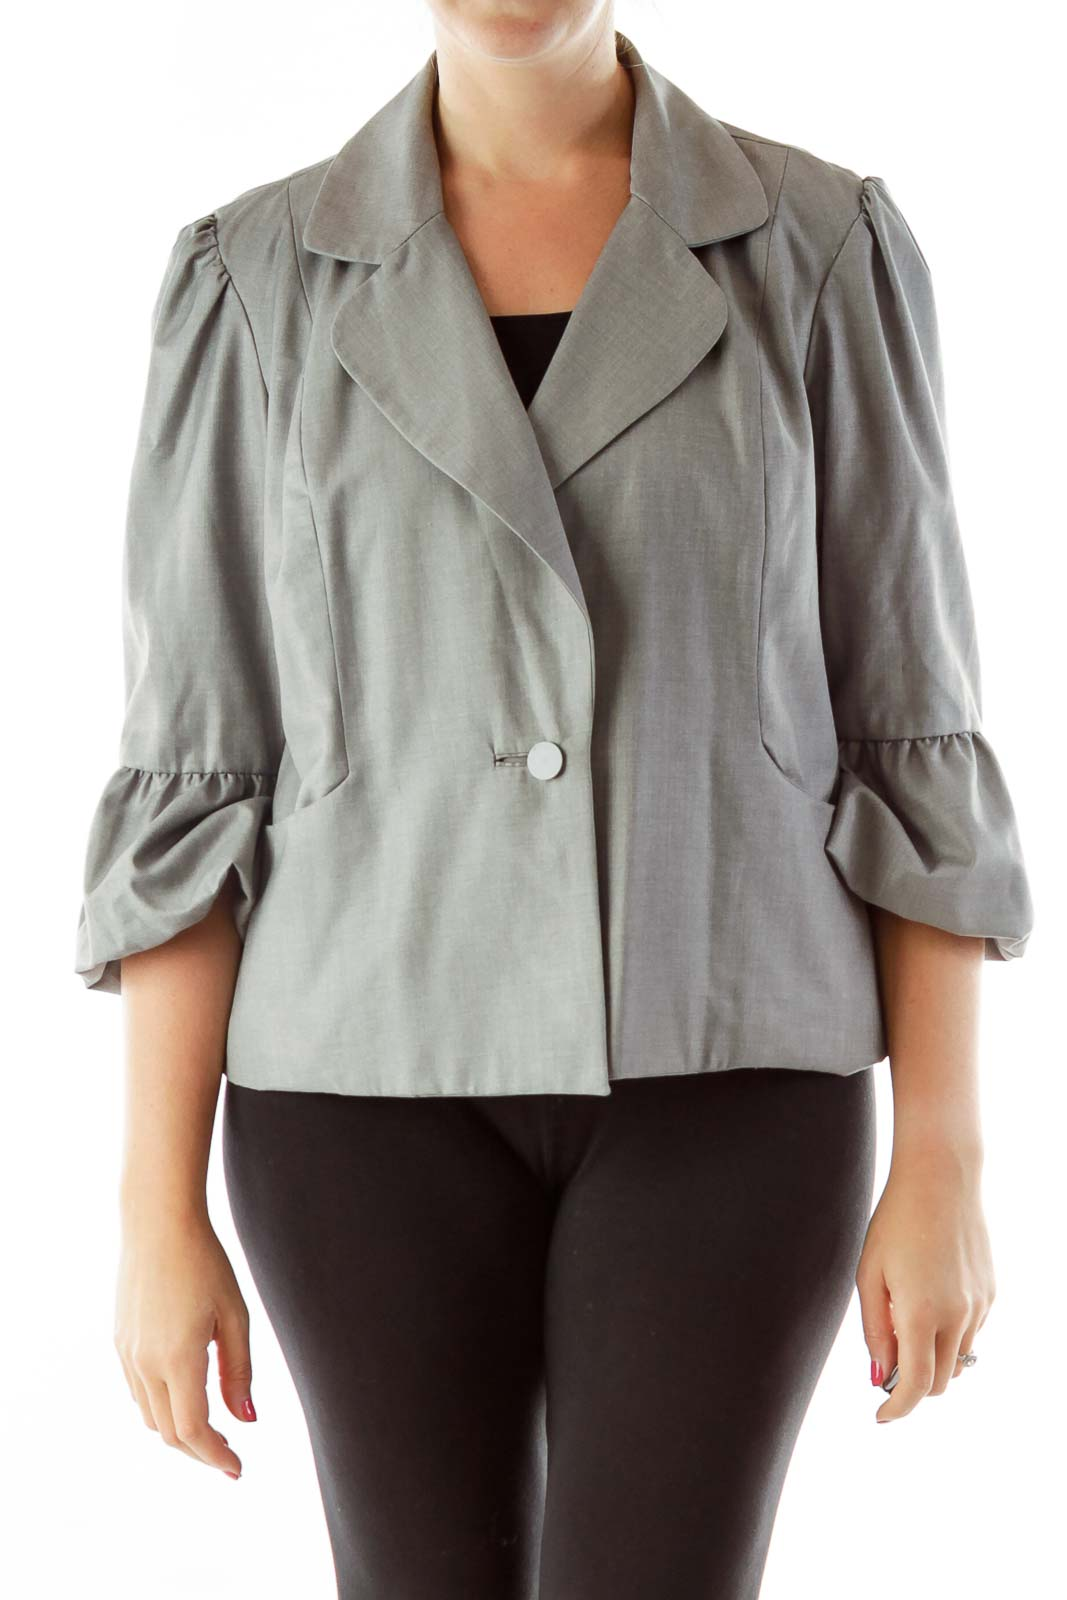 Gray Puffy Sleeves Blazer Front